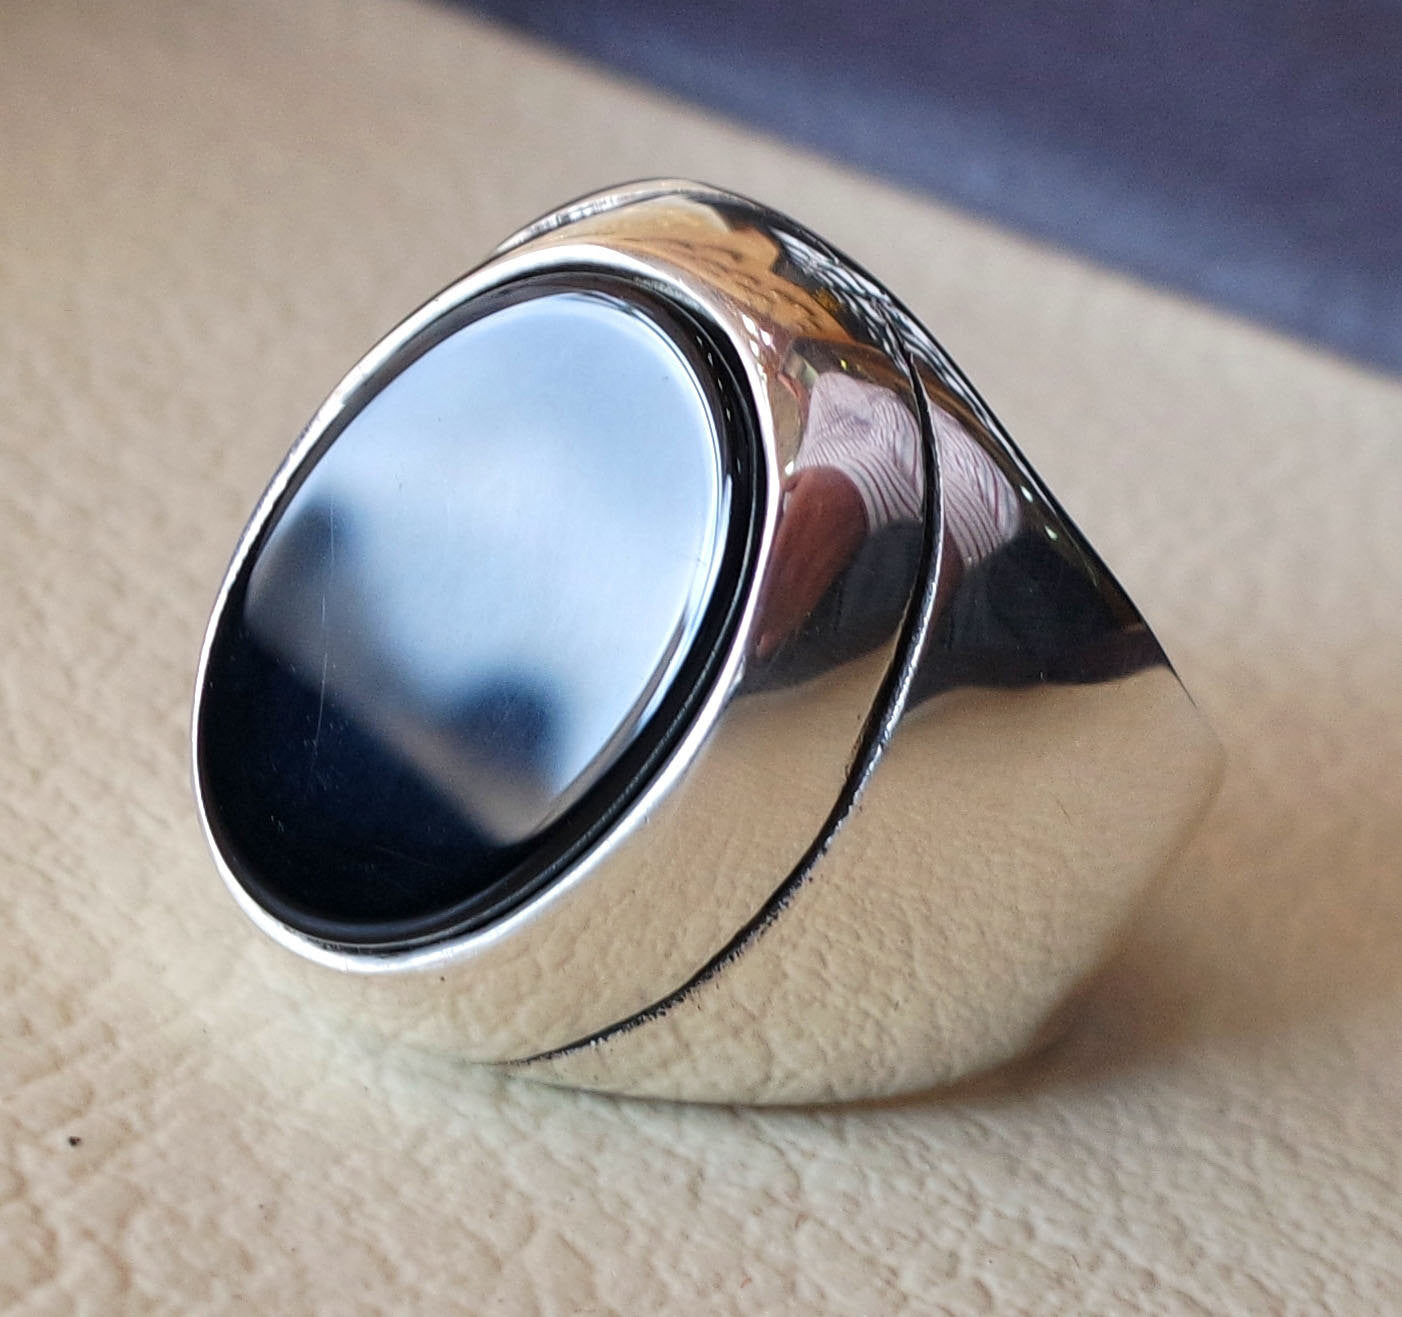 aqeeq natural agate onyx semi precious stone oval black flat heavy man ring sterling silver arabic middle eastern turkey style fast shipping